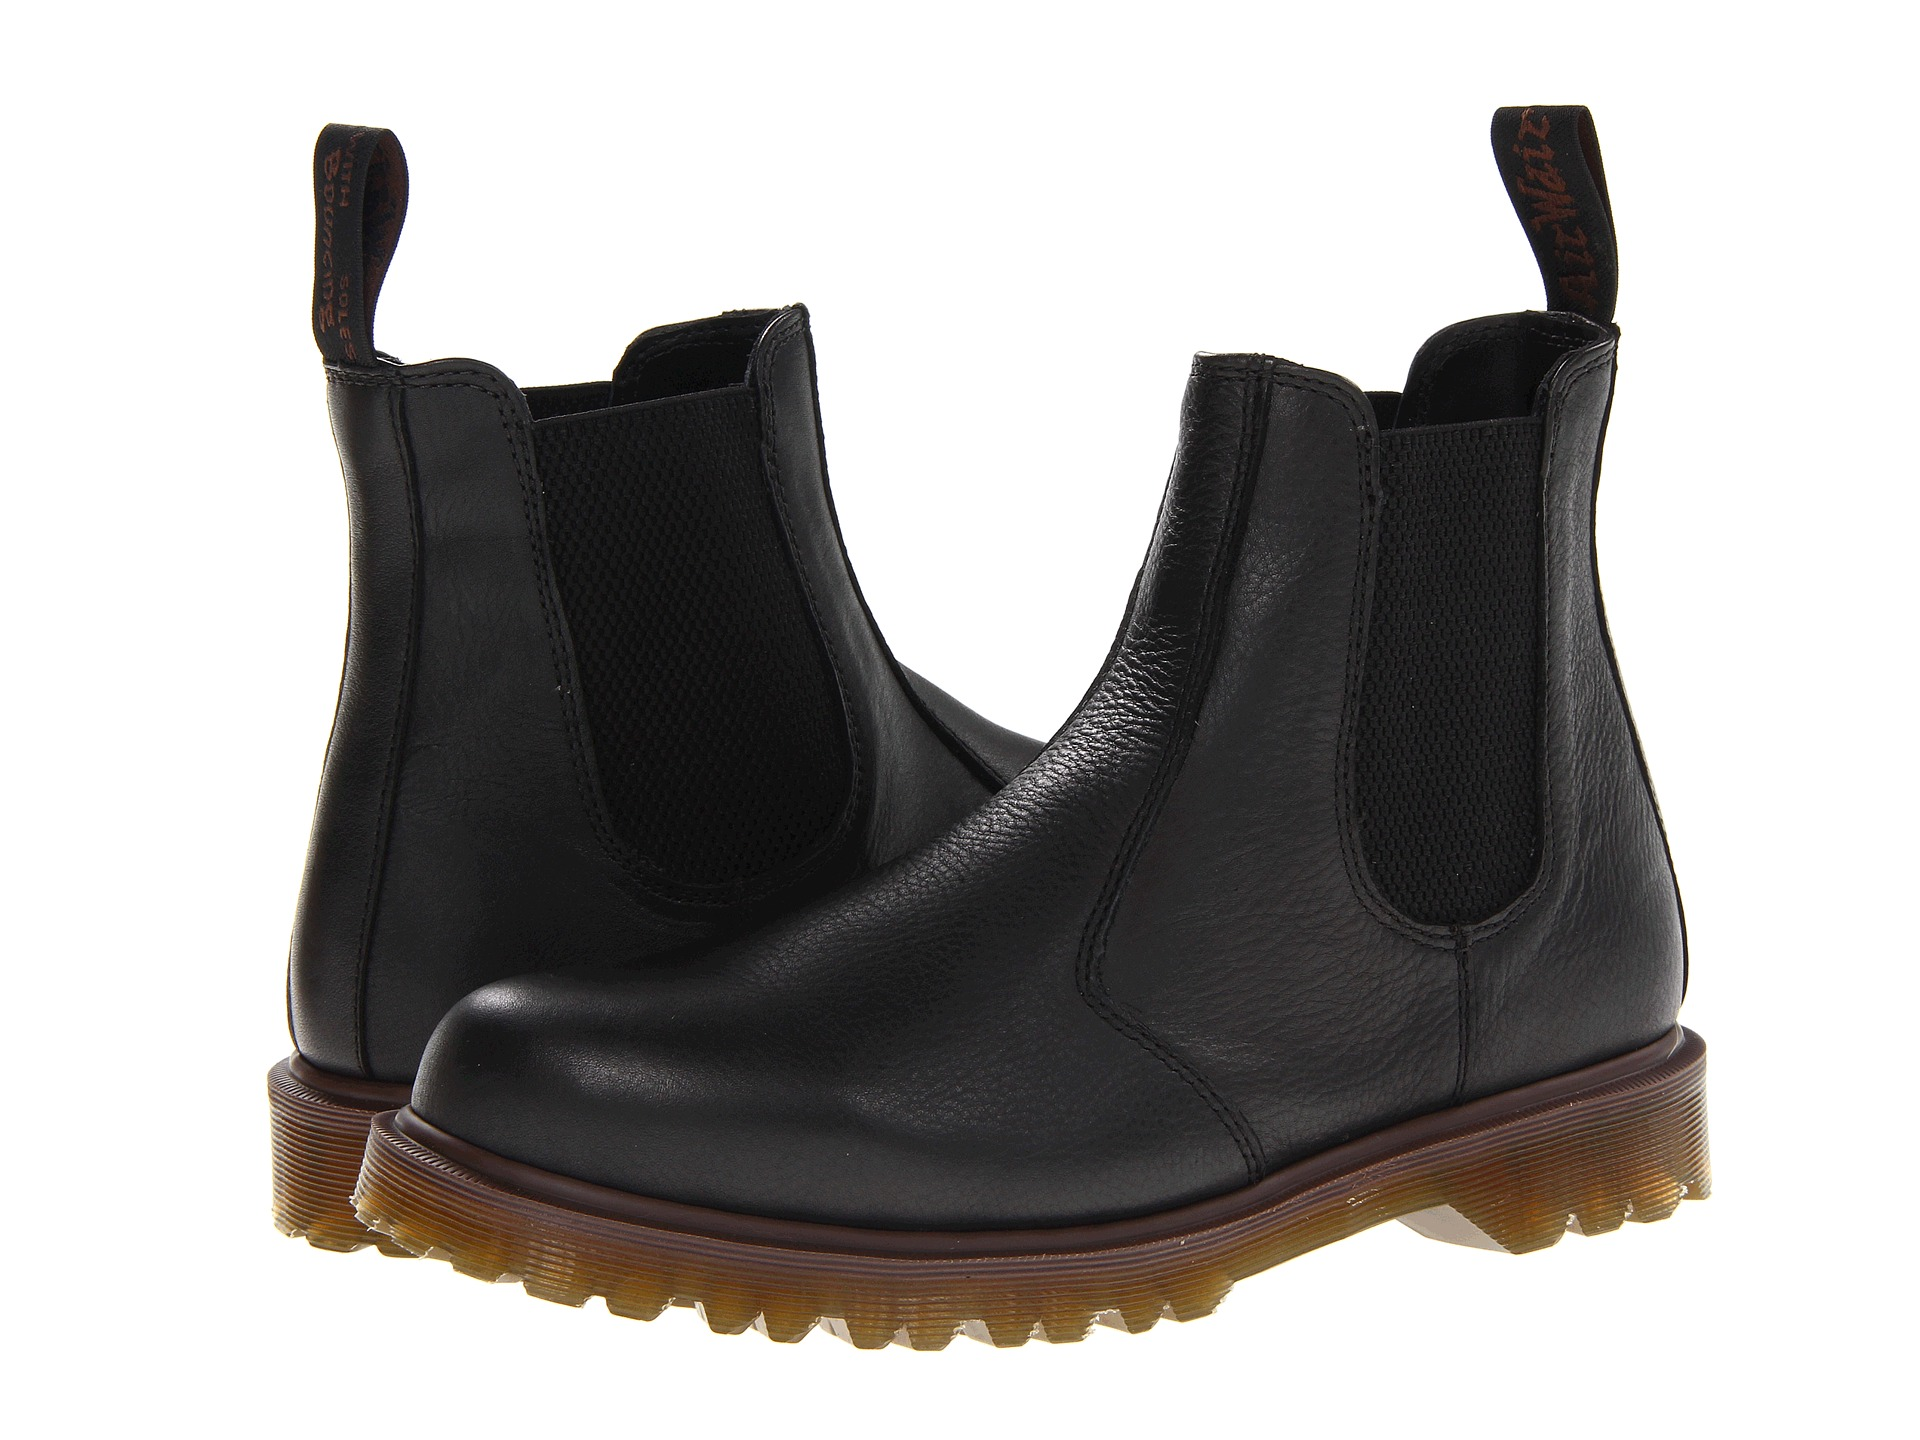 dr martens 2976 chelsea boot free shipping both ways. Black Bedroom Furniture Sets. Home Design Ideas